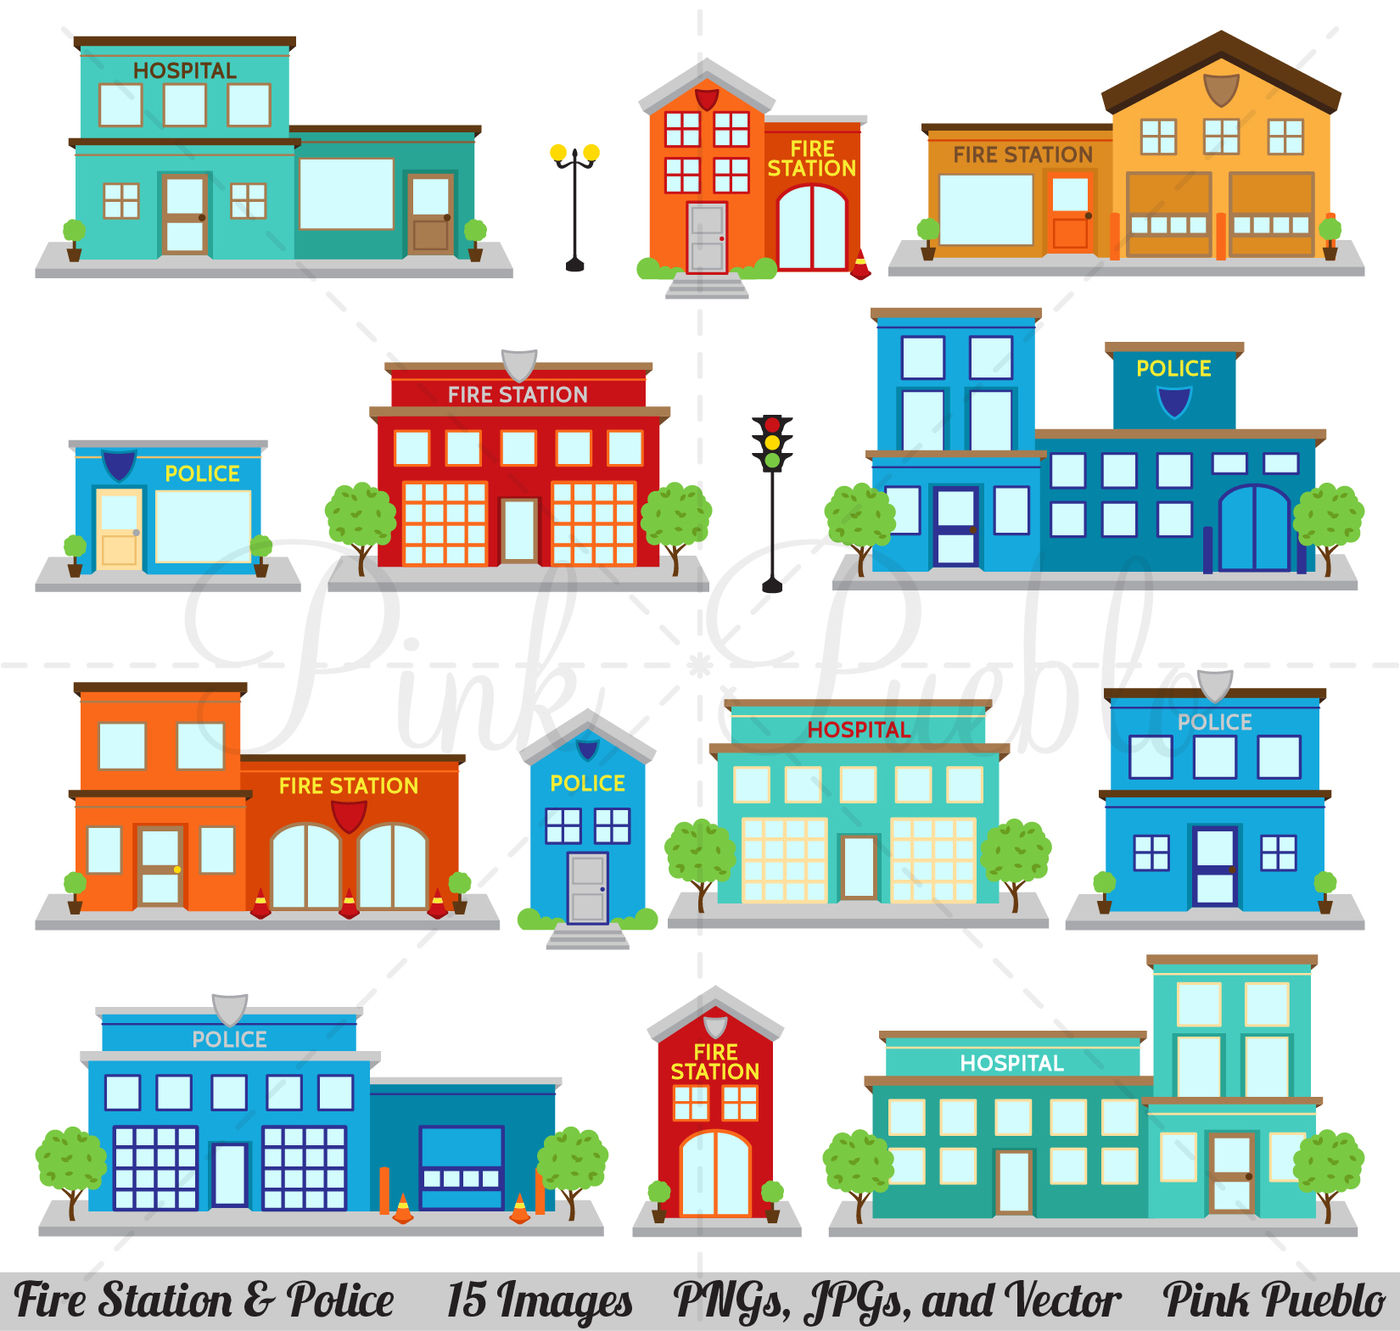 hight resolution of fire station and police clipart vectors